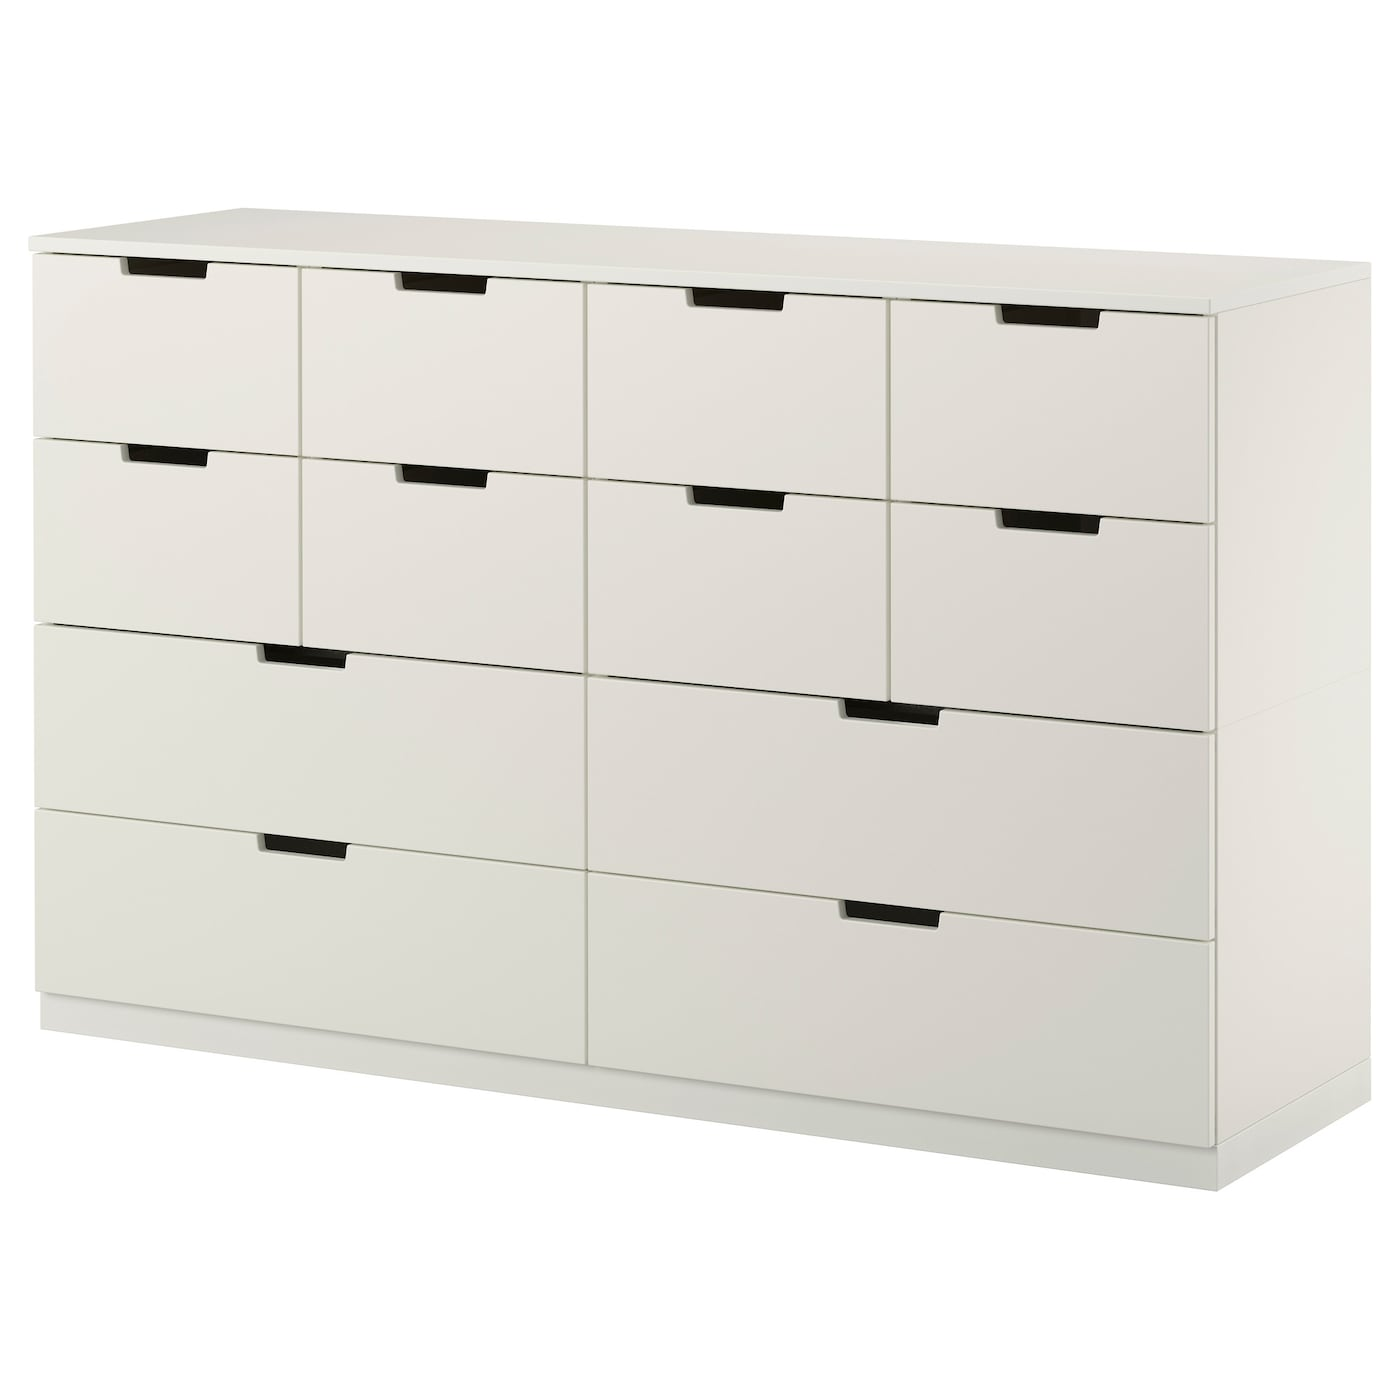 nordli chest of drawers white 160x97 cm ikea. Black Bedroom Furniture Sets. Home Design Ideas